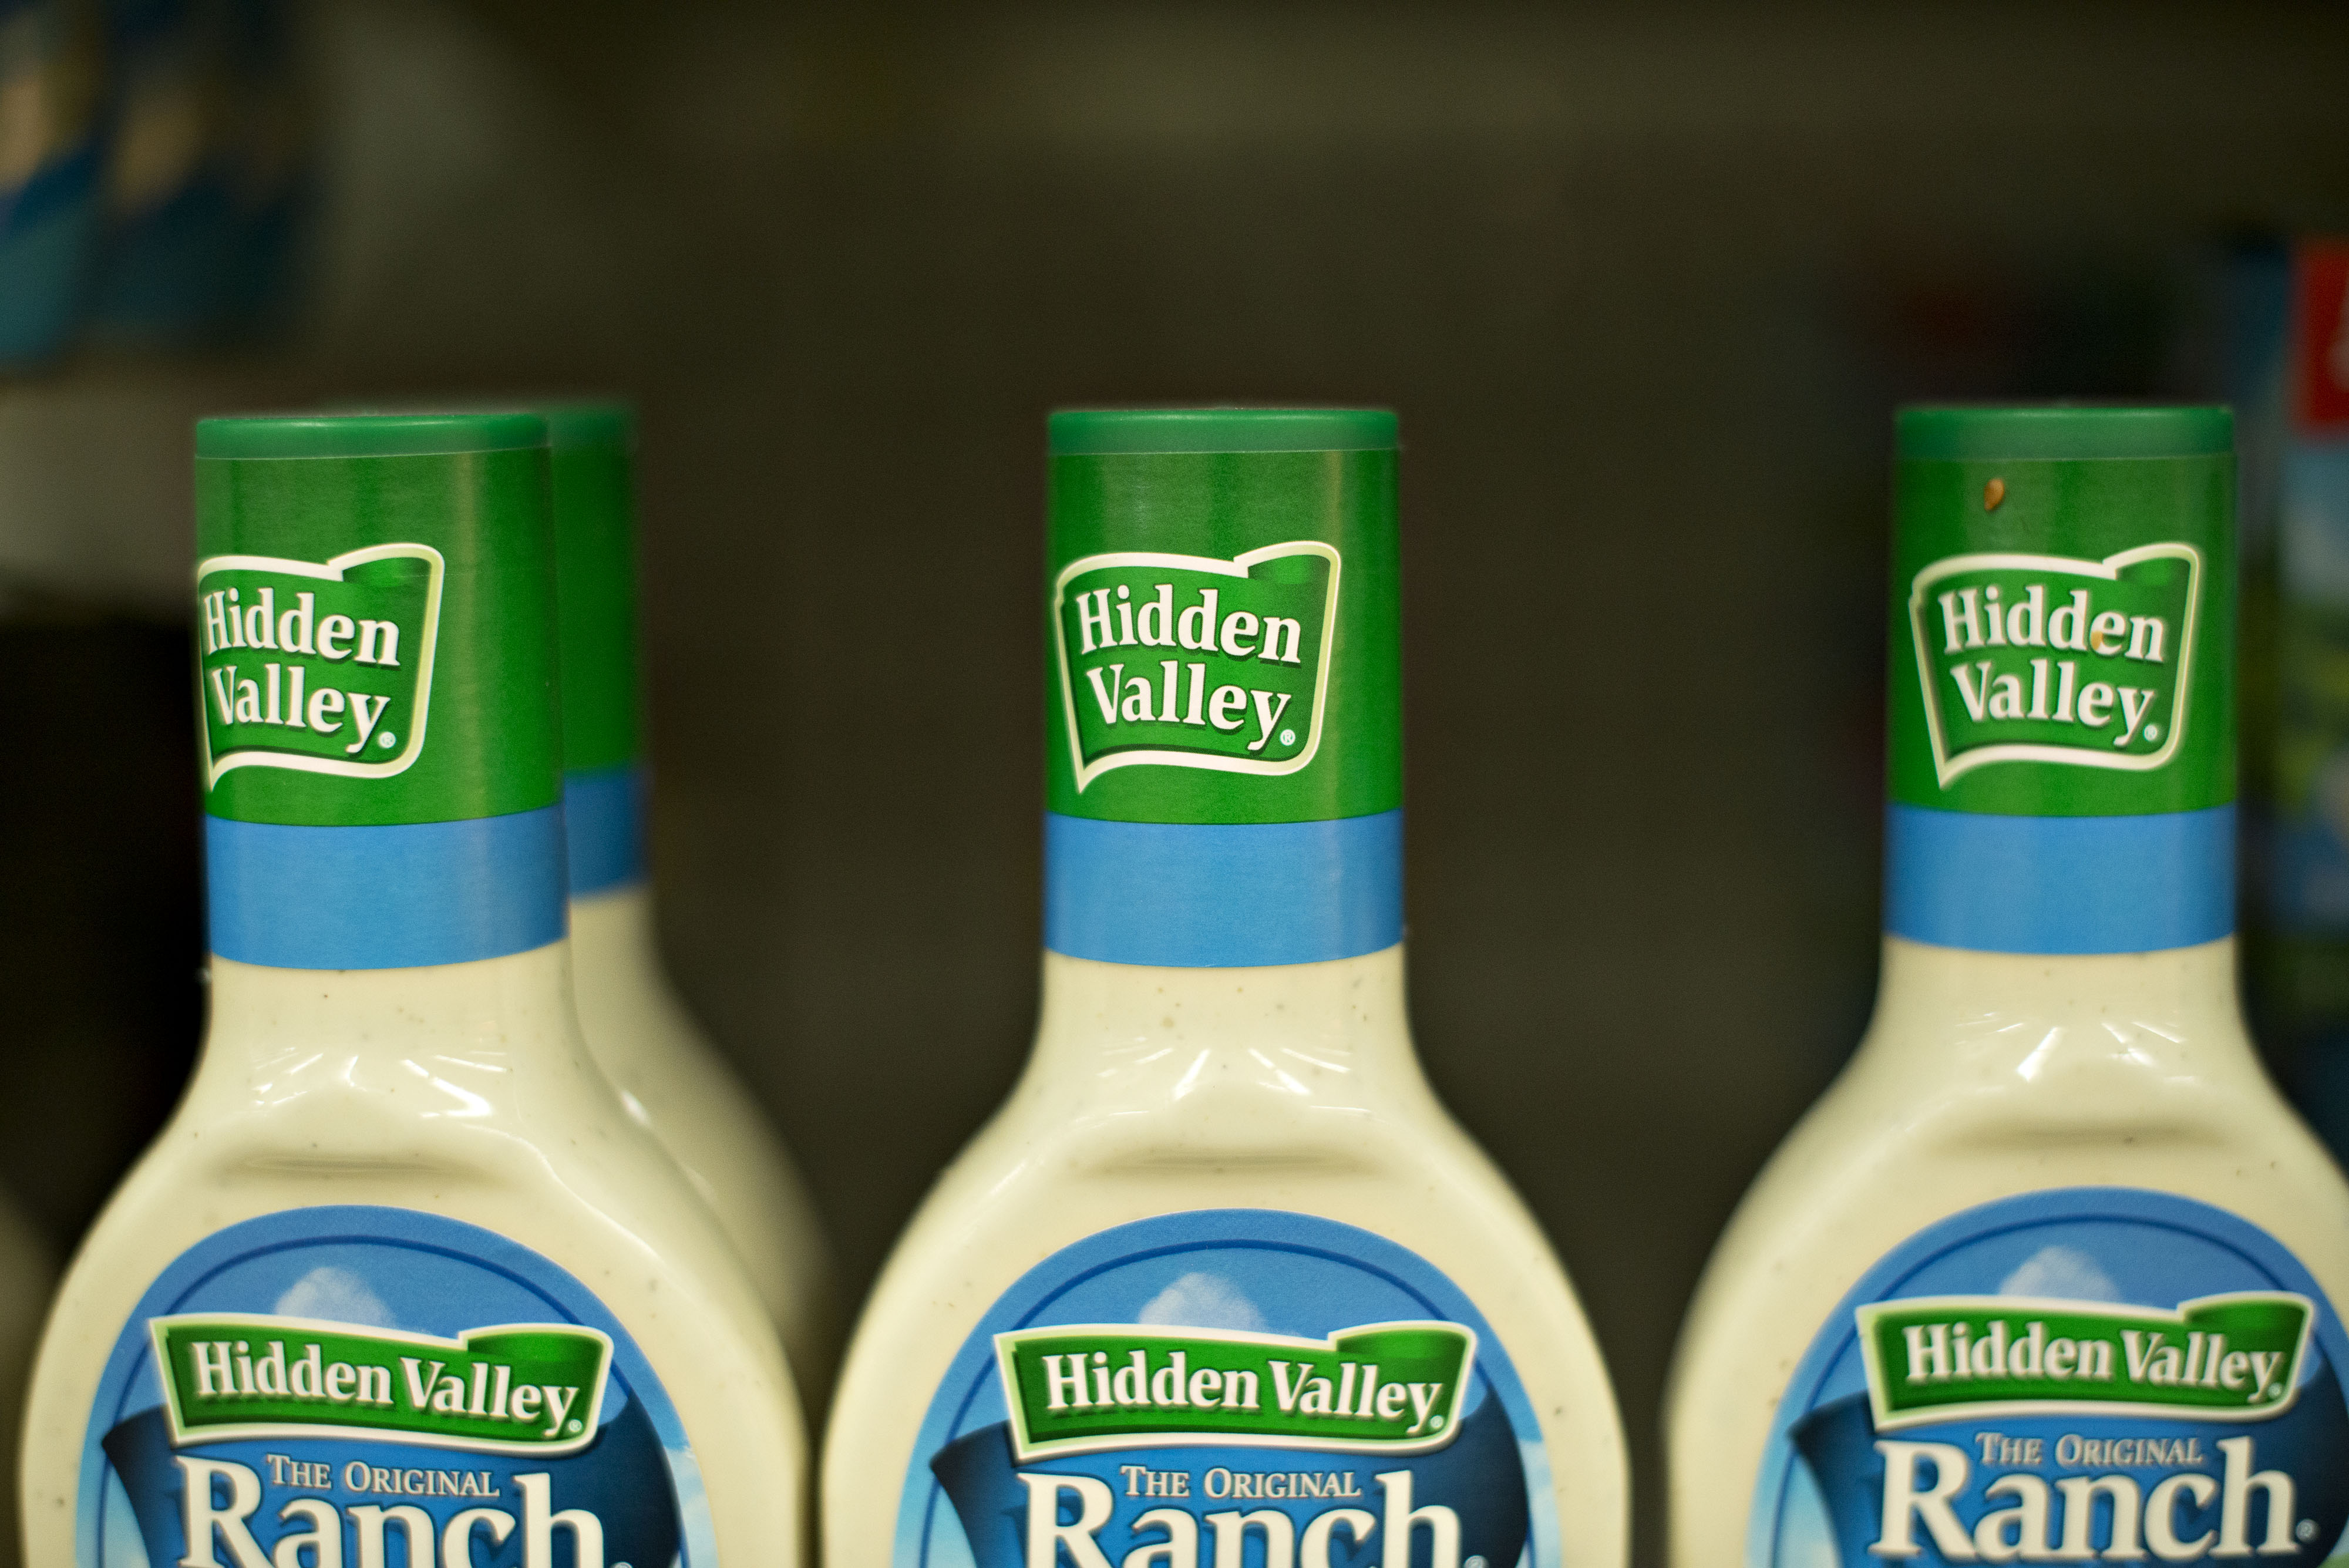 Hidden Valley is giving Prince Harry and Meghan Markle a diamond-encrusted bottle of ranch dressing, because nothing says forever like dairy